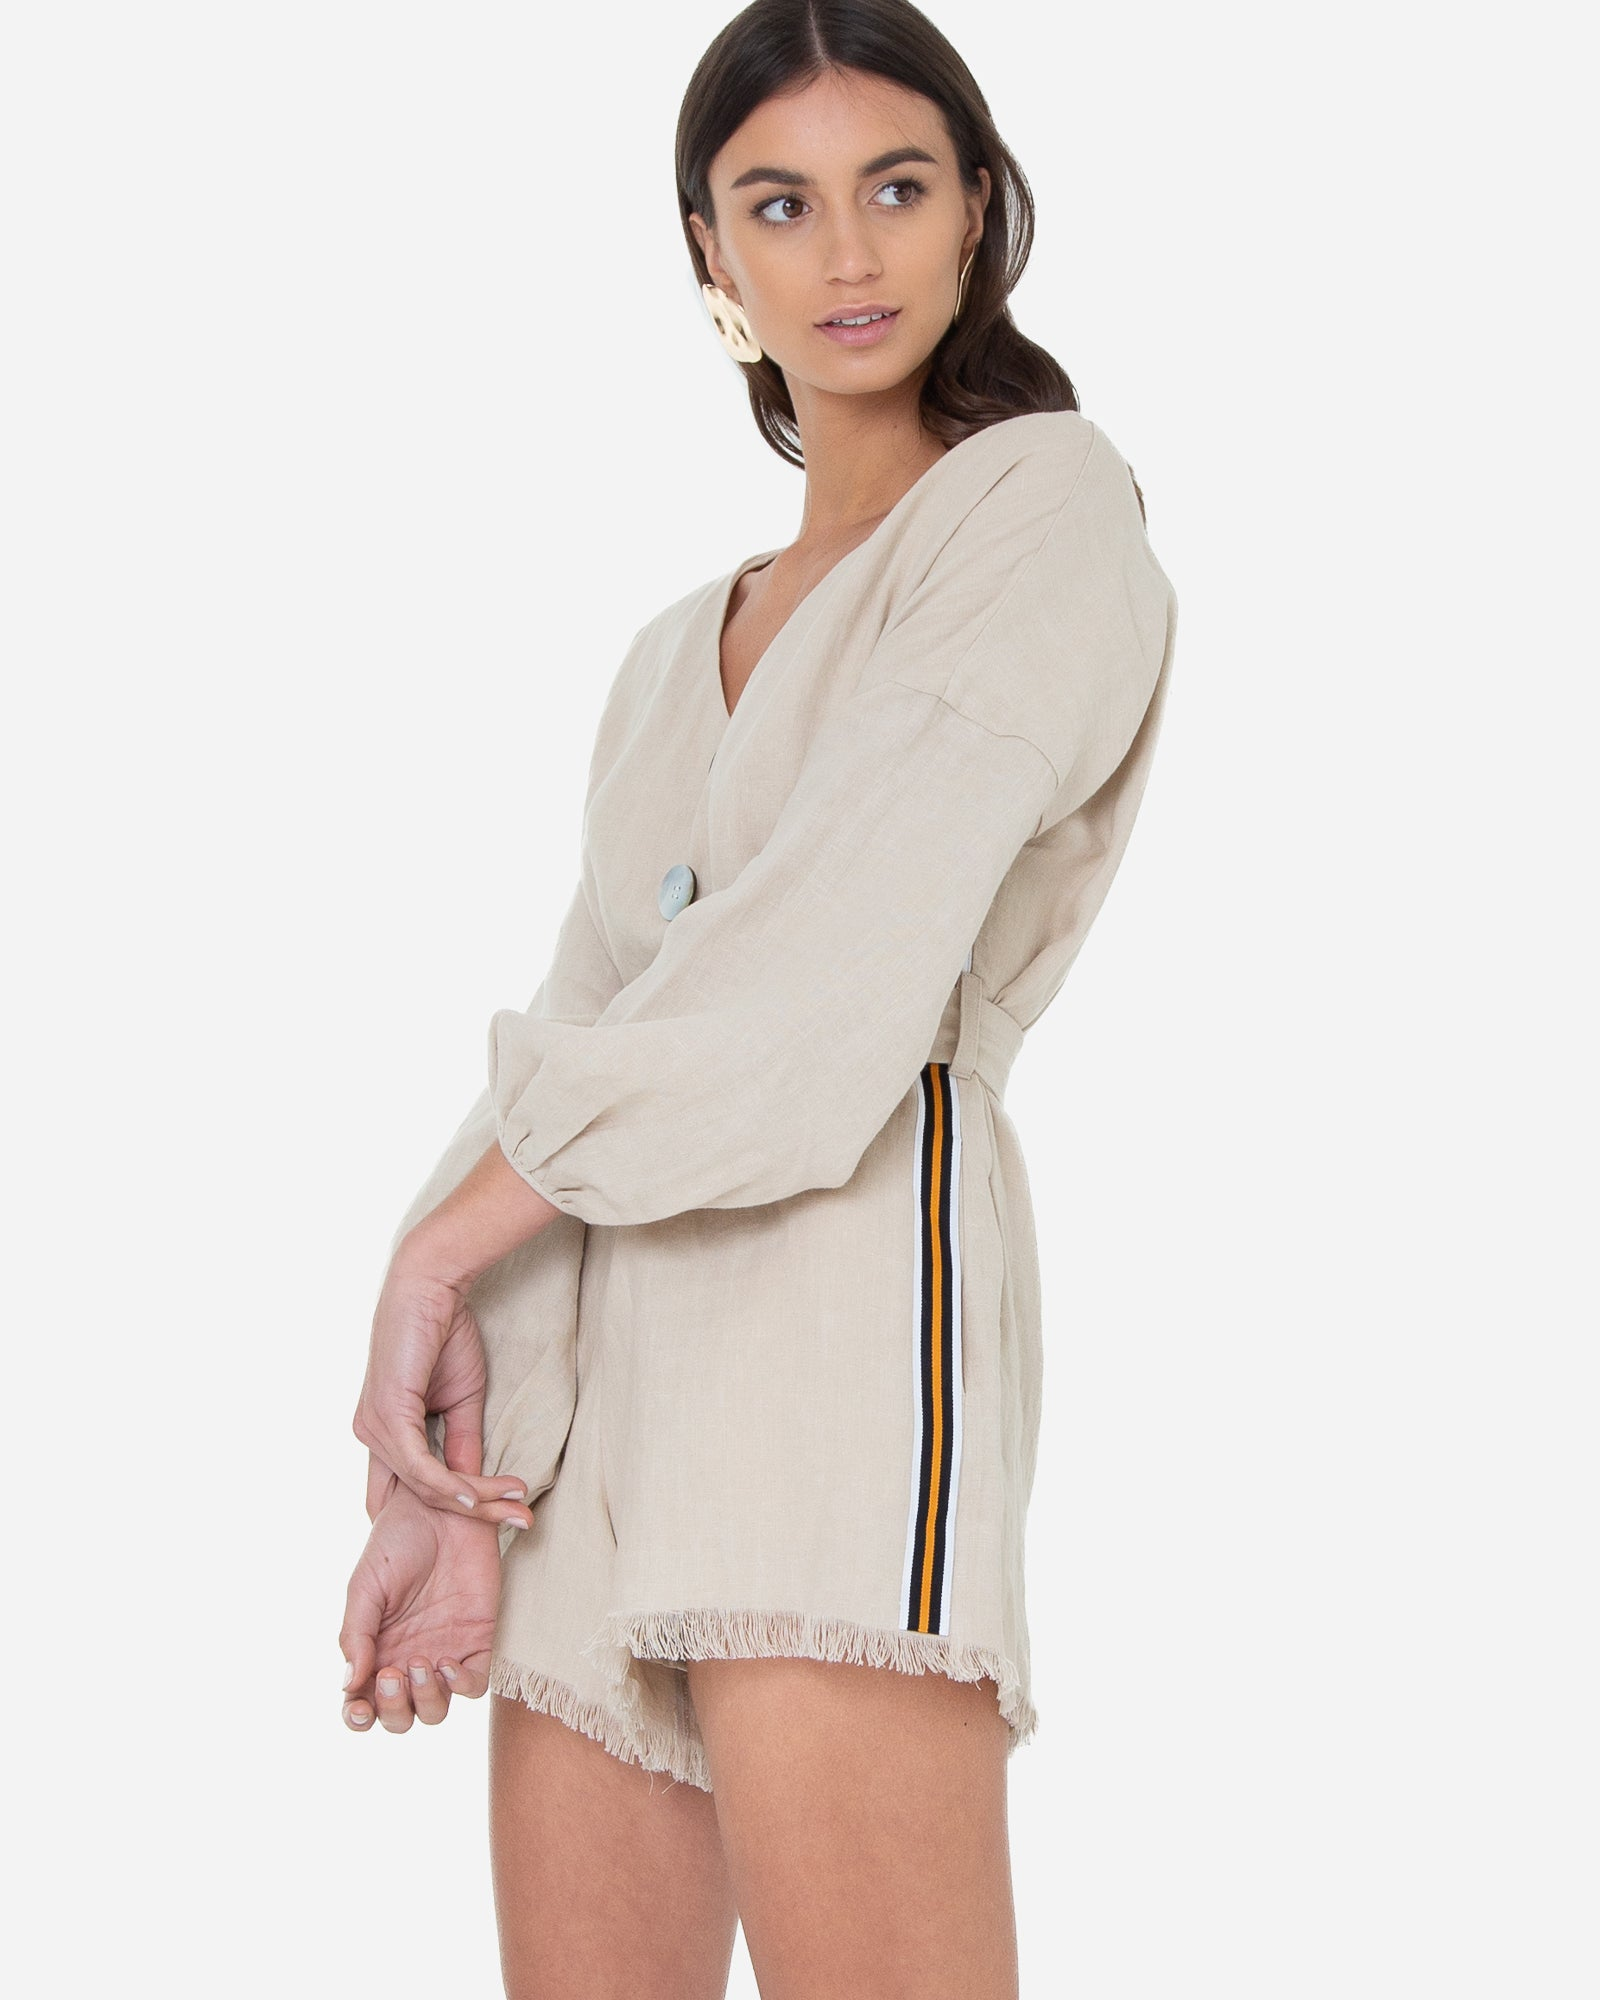 ARABELE PLAYSUIT